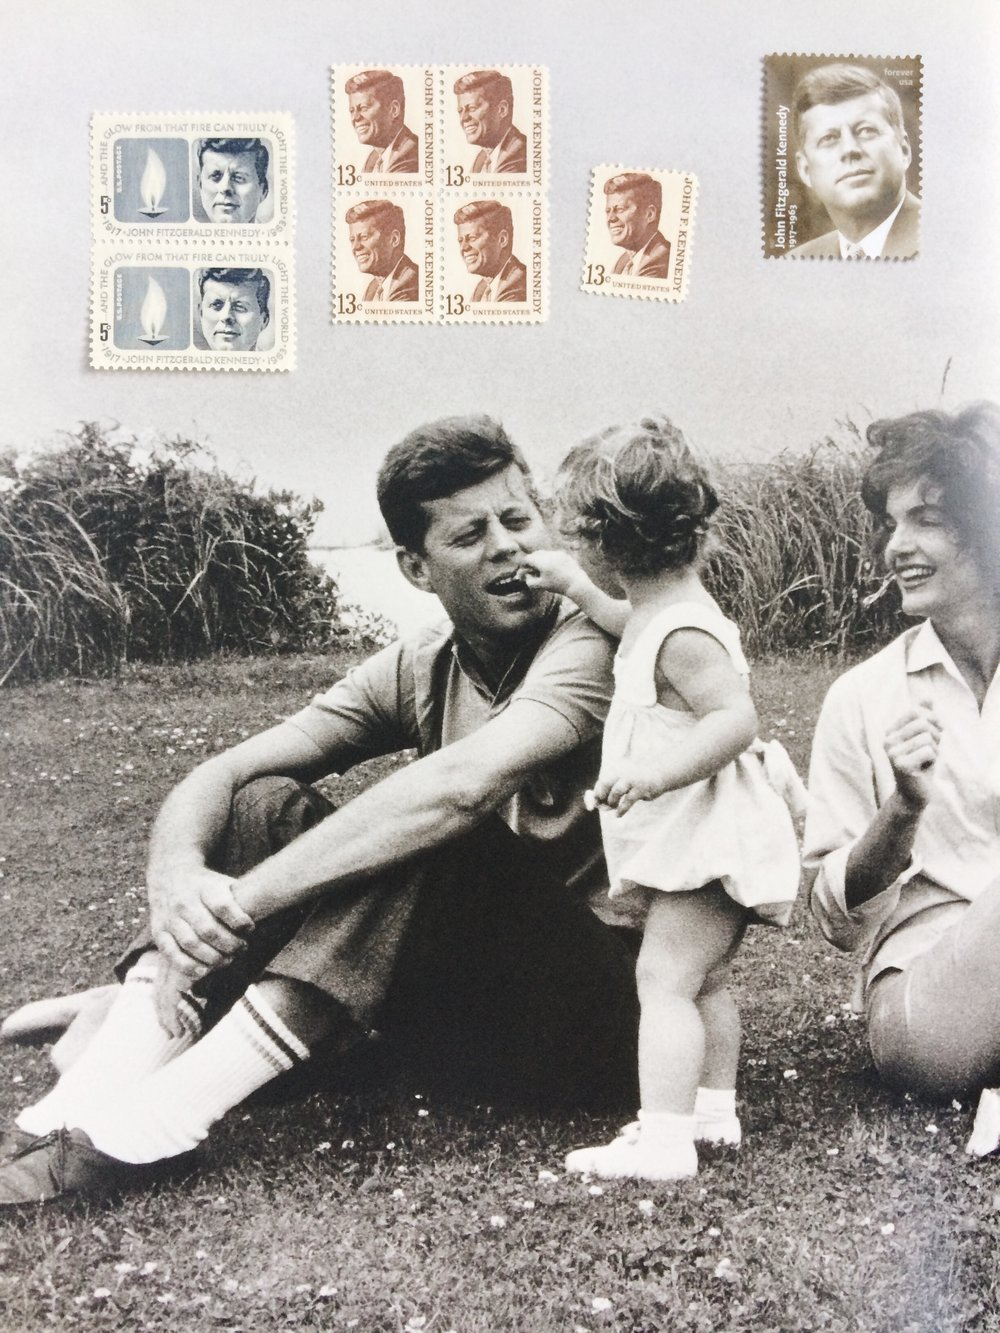 JFK Postage Stamps / Paper & Type